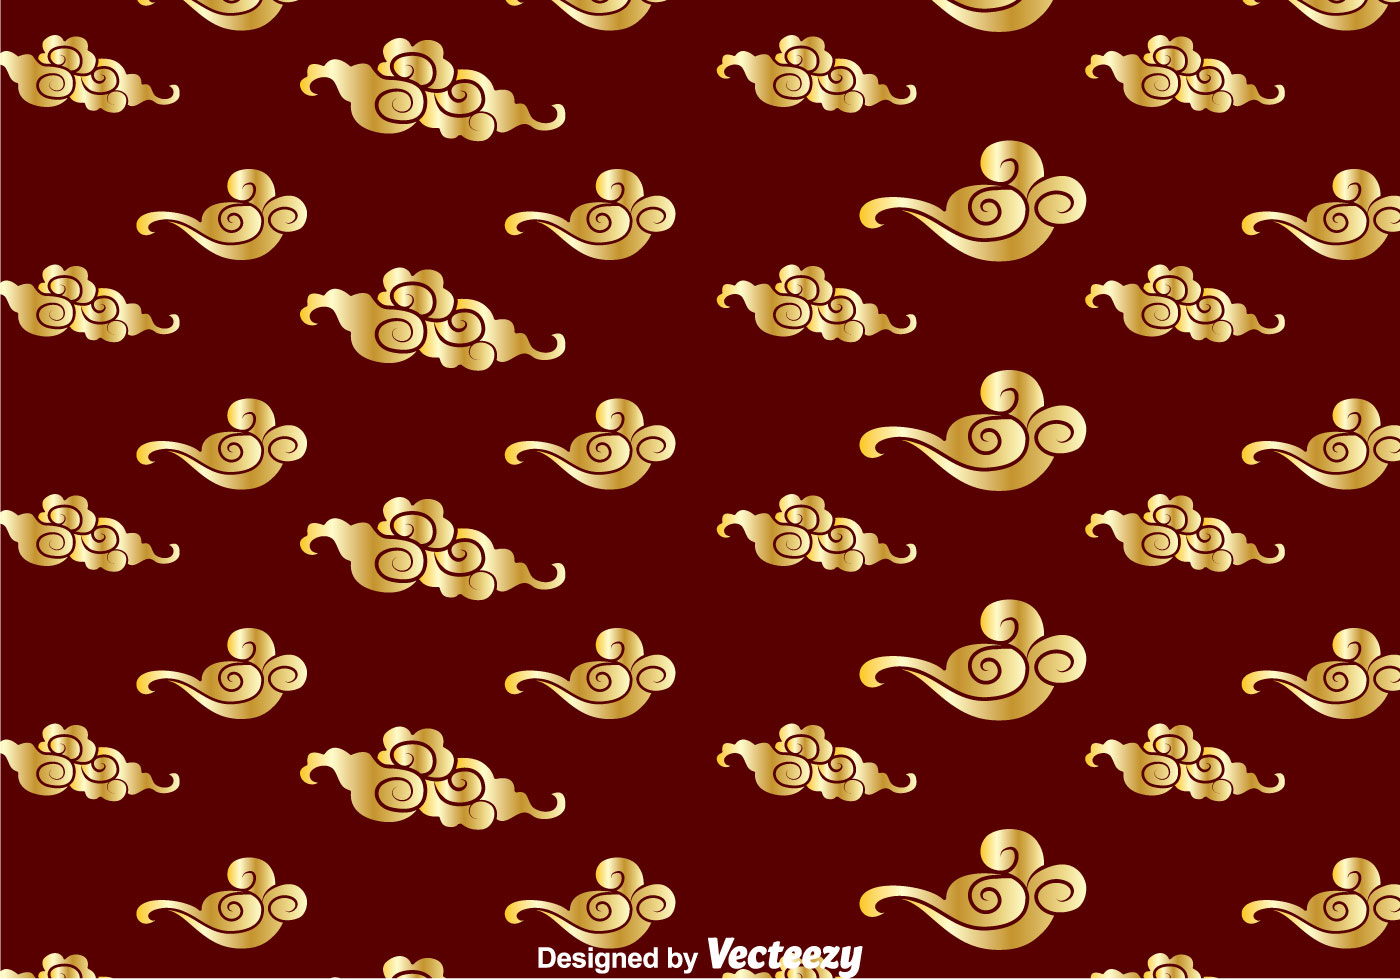 Golden Chinese Cloud Pattern - Download Free Vector Art, Stock ...